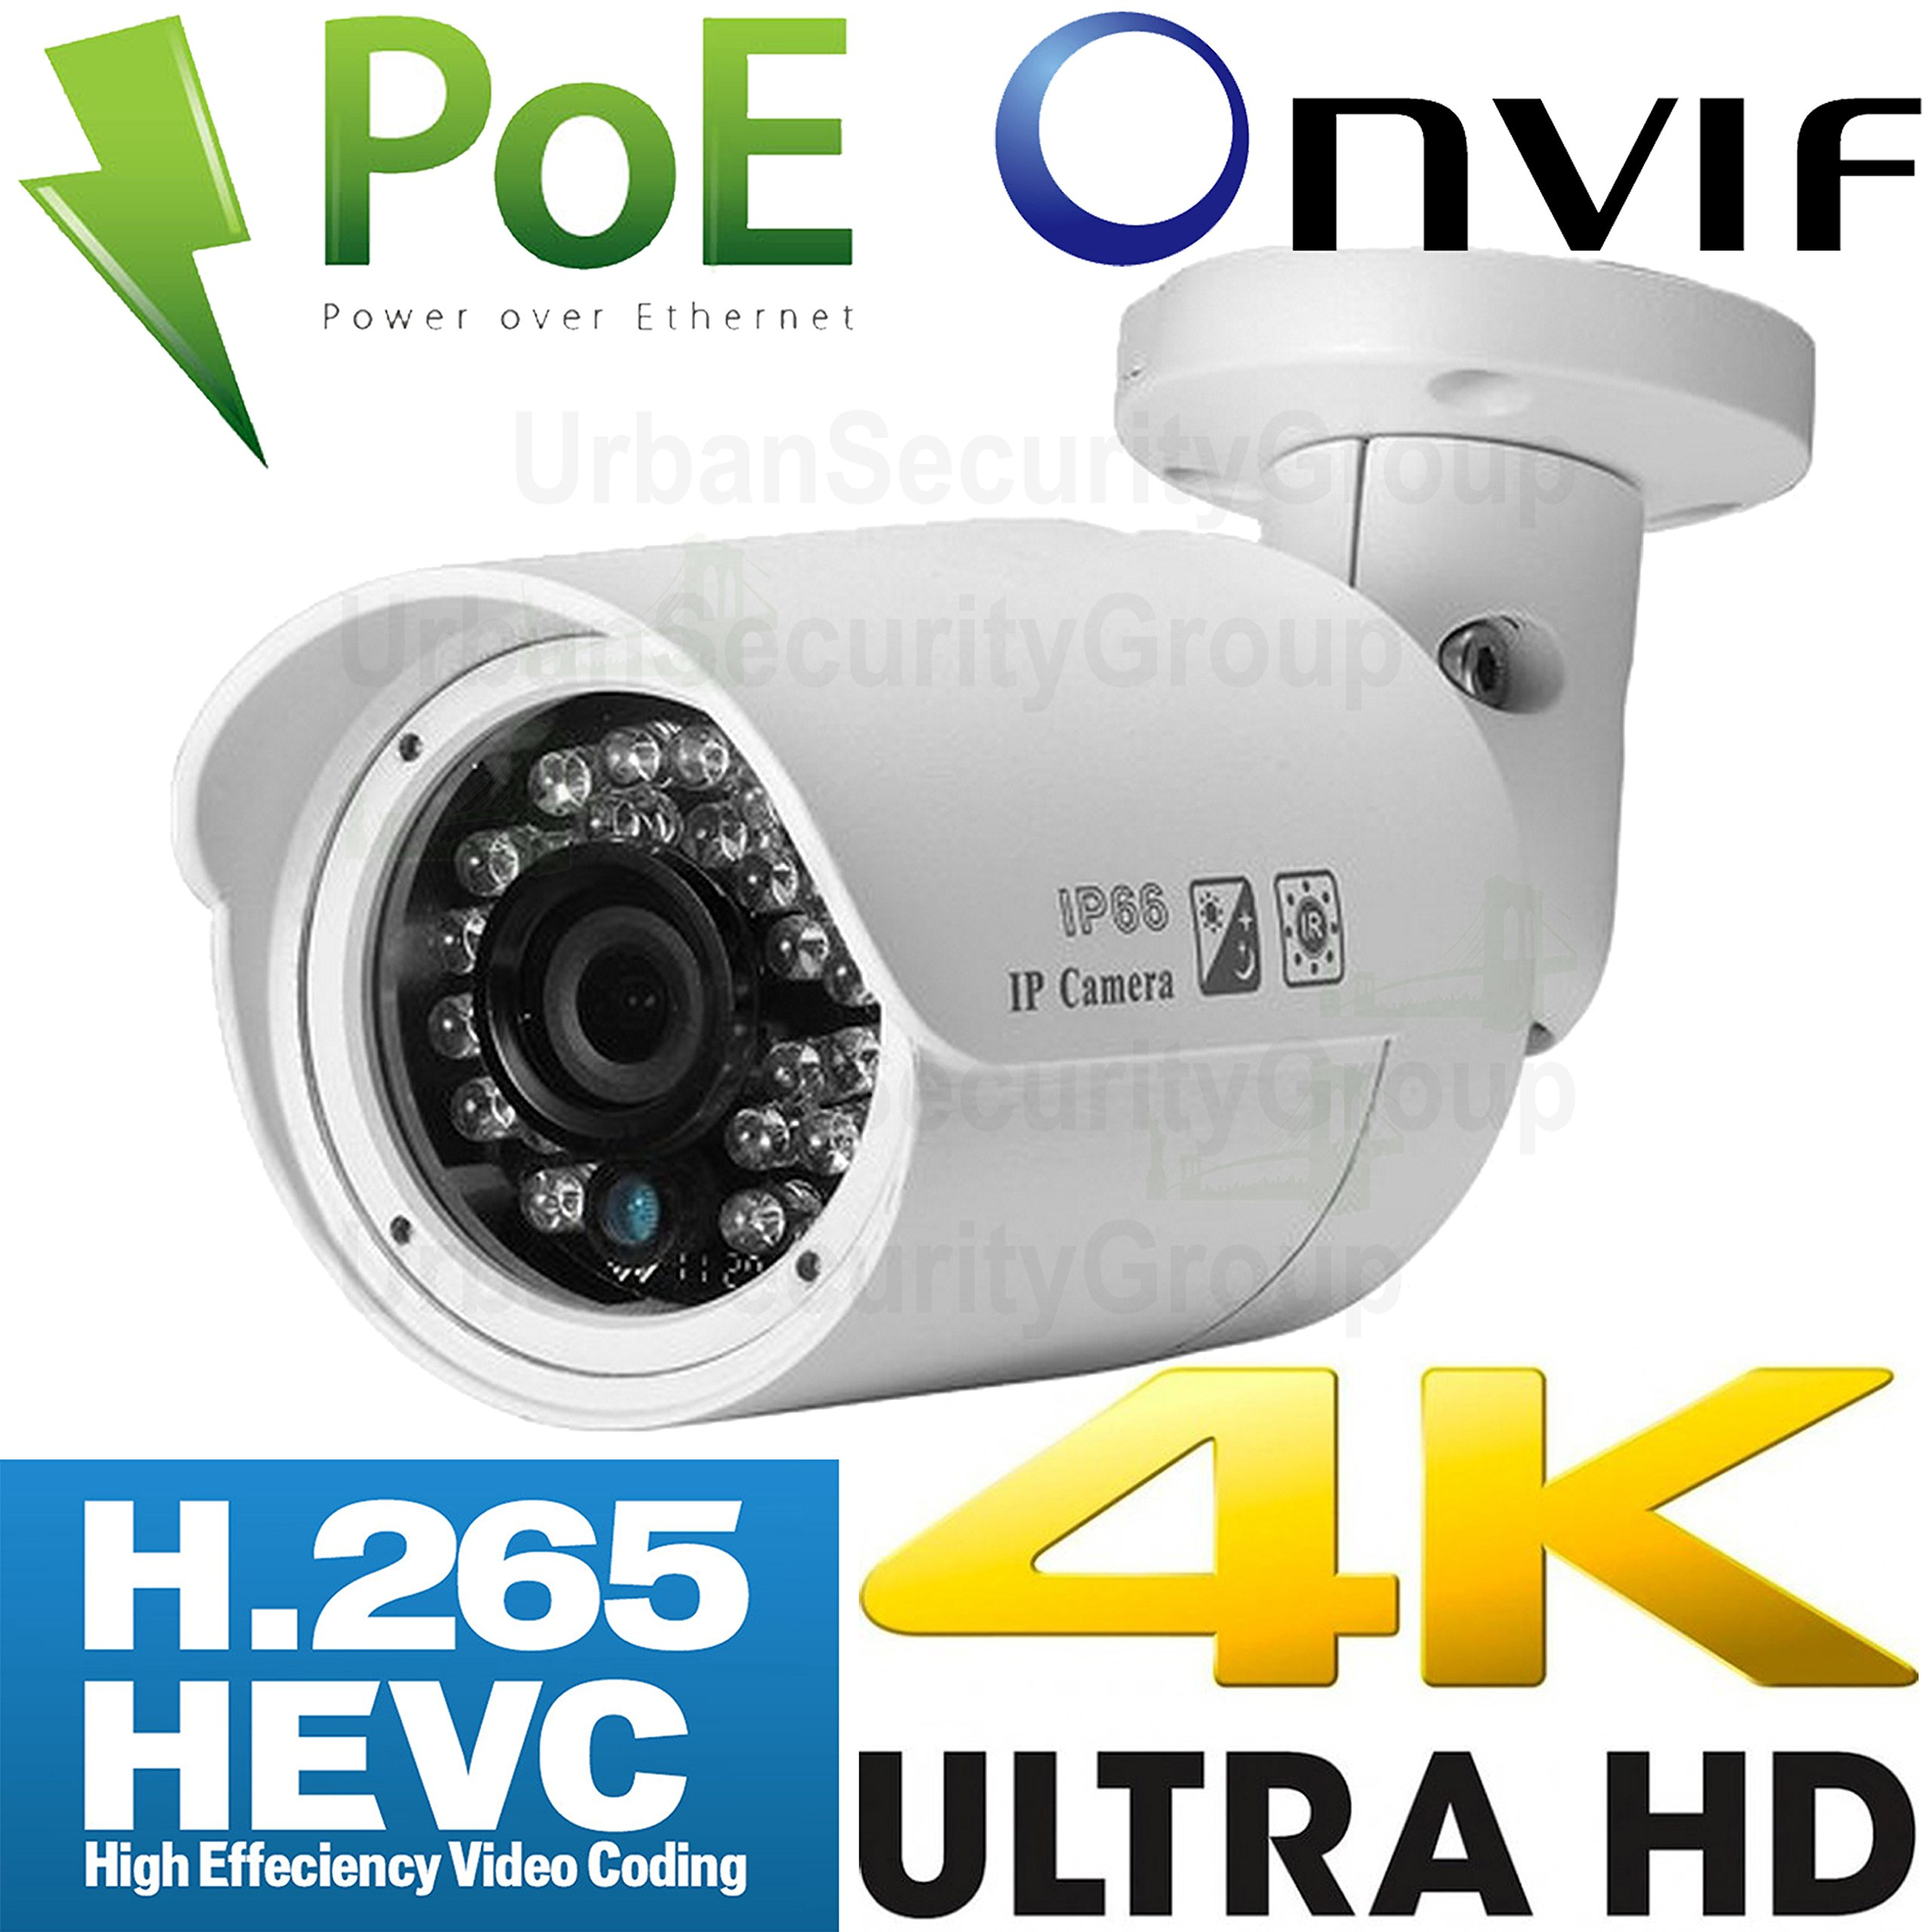 USG 4MP 2592x1520 3.6mm Wide Angle 5MP HD LENS H.265 IP Bullet Security Camera With Audio PoE, 24x IR LEDs, Vandal & Weatherproof, ONVIF 2.4, View On Phone + Computer + NVR Business Grade CCTV